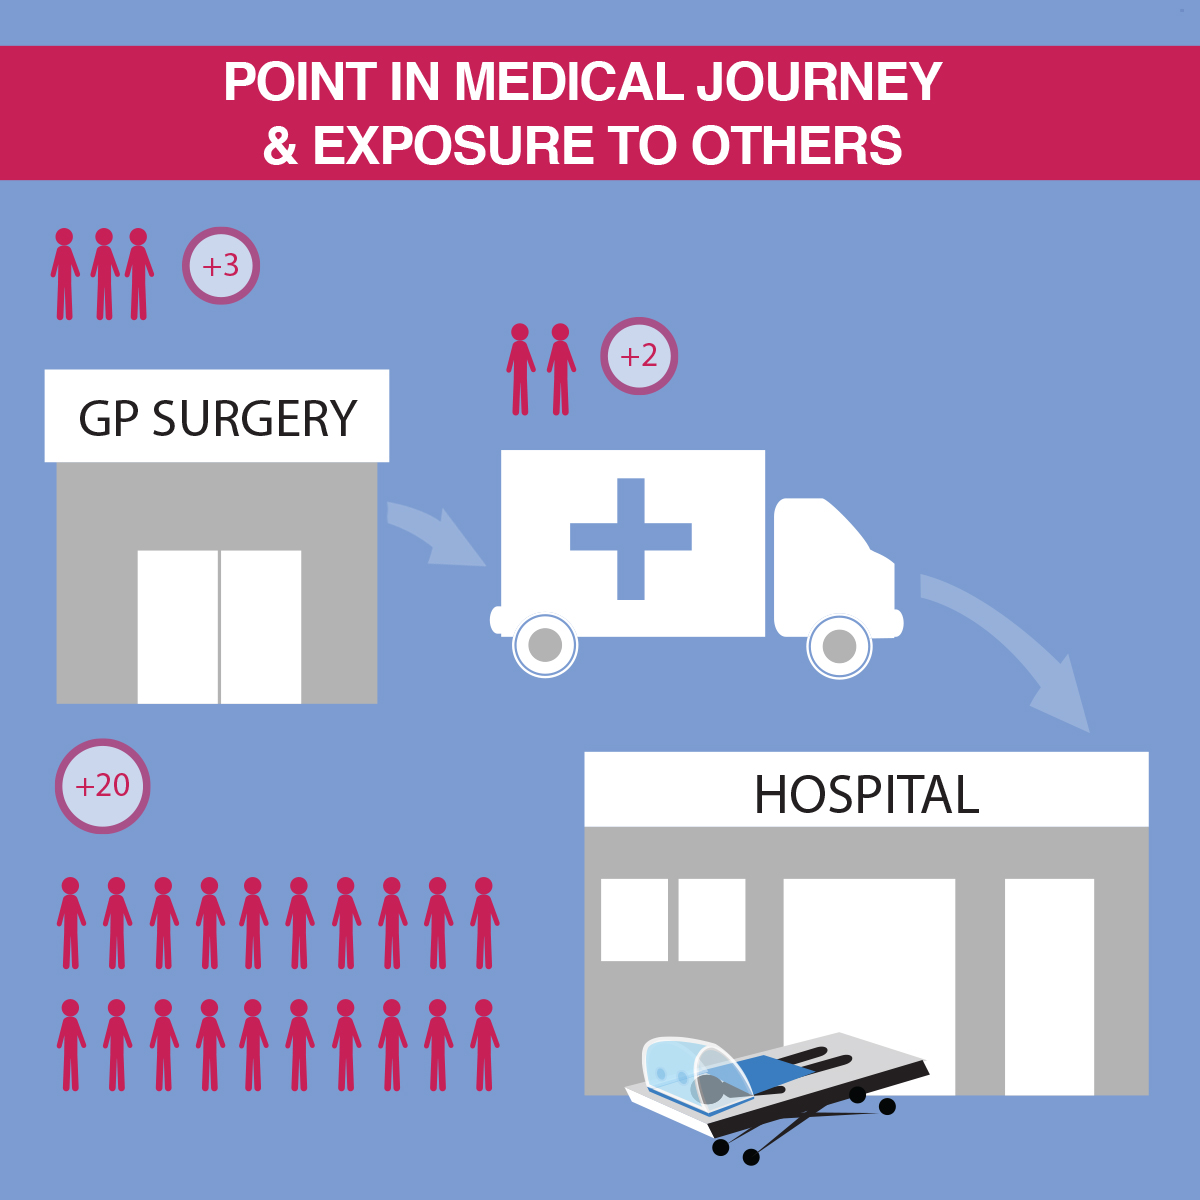 A #patient could've been exposed to up to 100 #NHS personnel from #GPs surgery via #ambulance to #hospital. #AerosolShield can be deployed in under 20 seconds & can remain in place during this journey, significantly reducing the risk of infection. #patientexperience #covid19 https://t.co/CYvBHdcagP